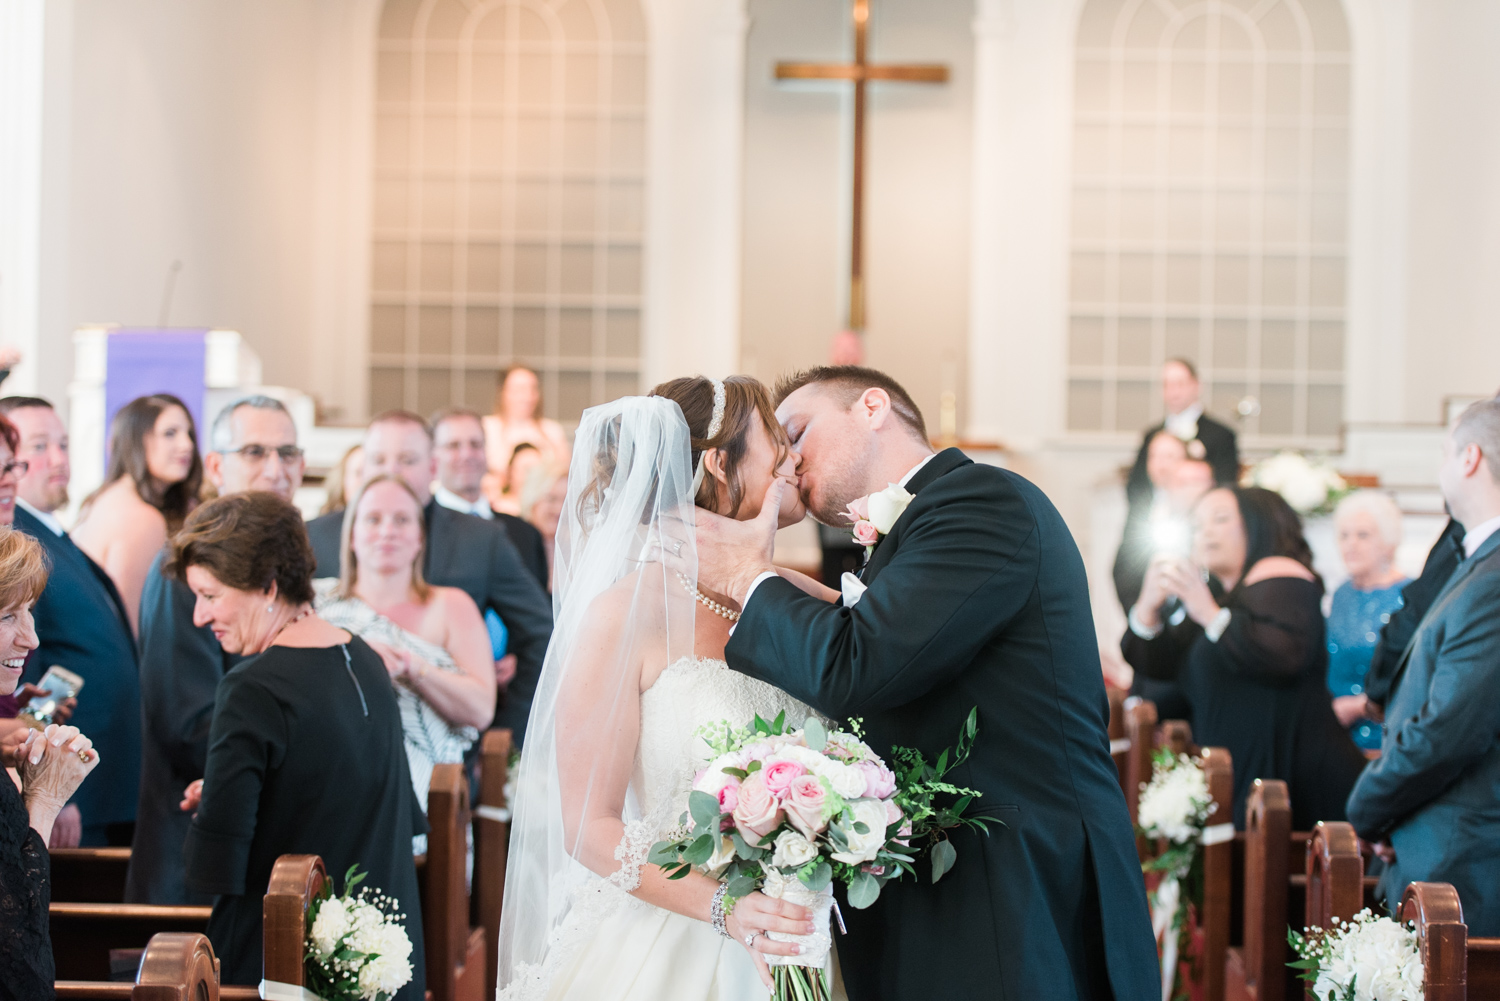 First Congregational Chuch of Winter Park Wedding Rania Marie Photography